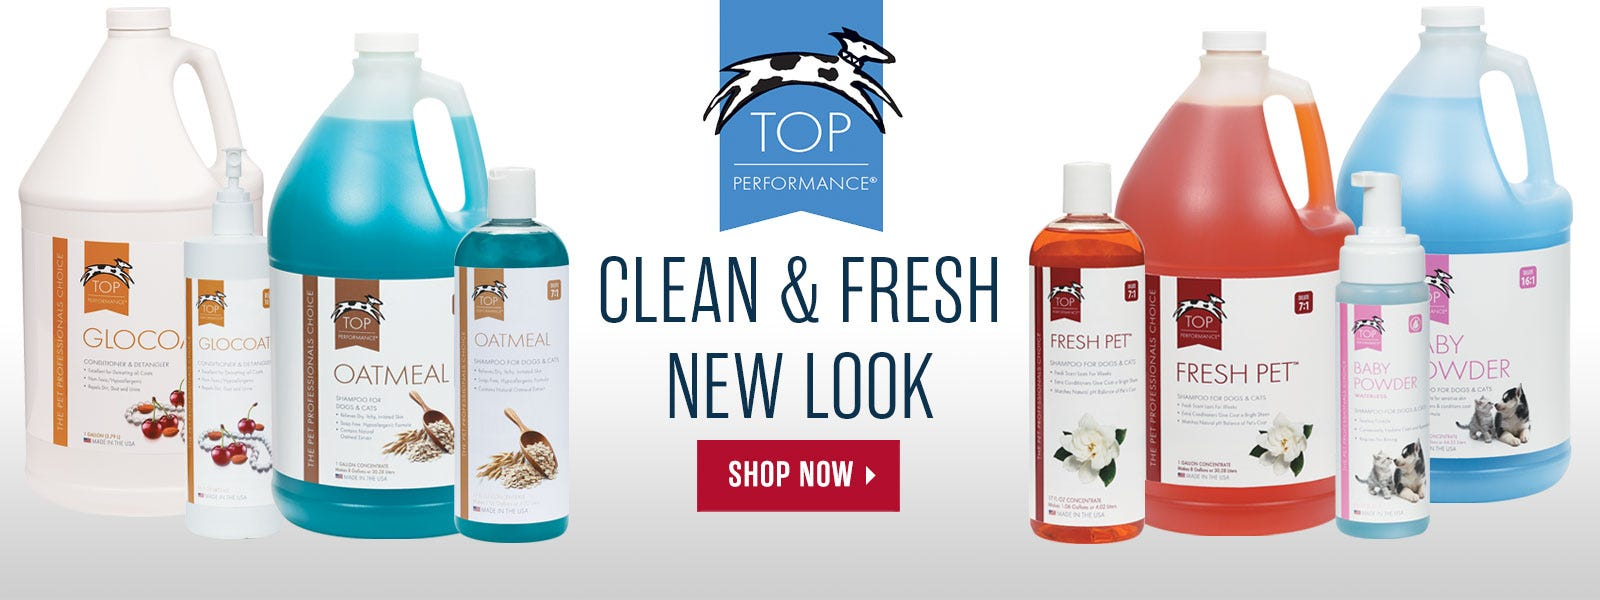 Clean & Fresh New Look - Best Selling Top Performance Professional Dog Grooming Shampoos